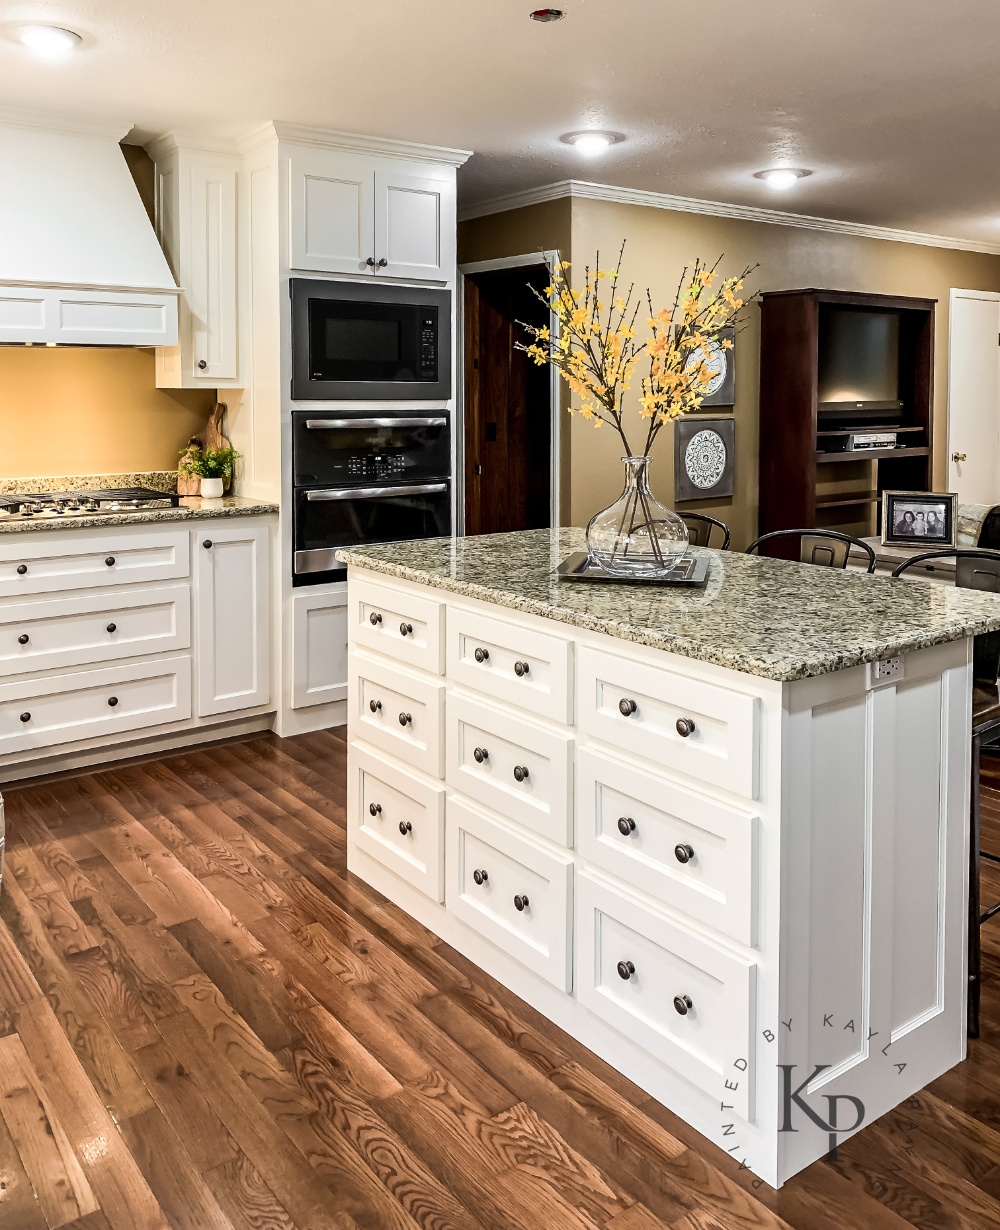 Kitchen Cabinets In Sherwin Williams Dover White In 2020 Sherwin Williams Dover White White Paint Colors Sherwin Williams Painting Kitchen Cabinets White